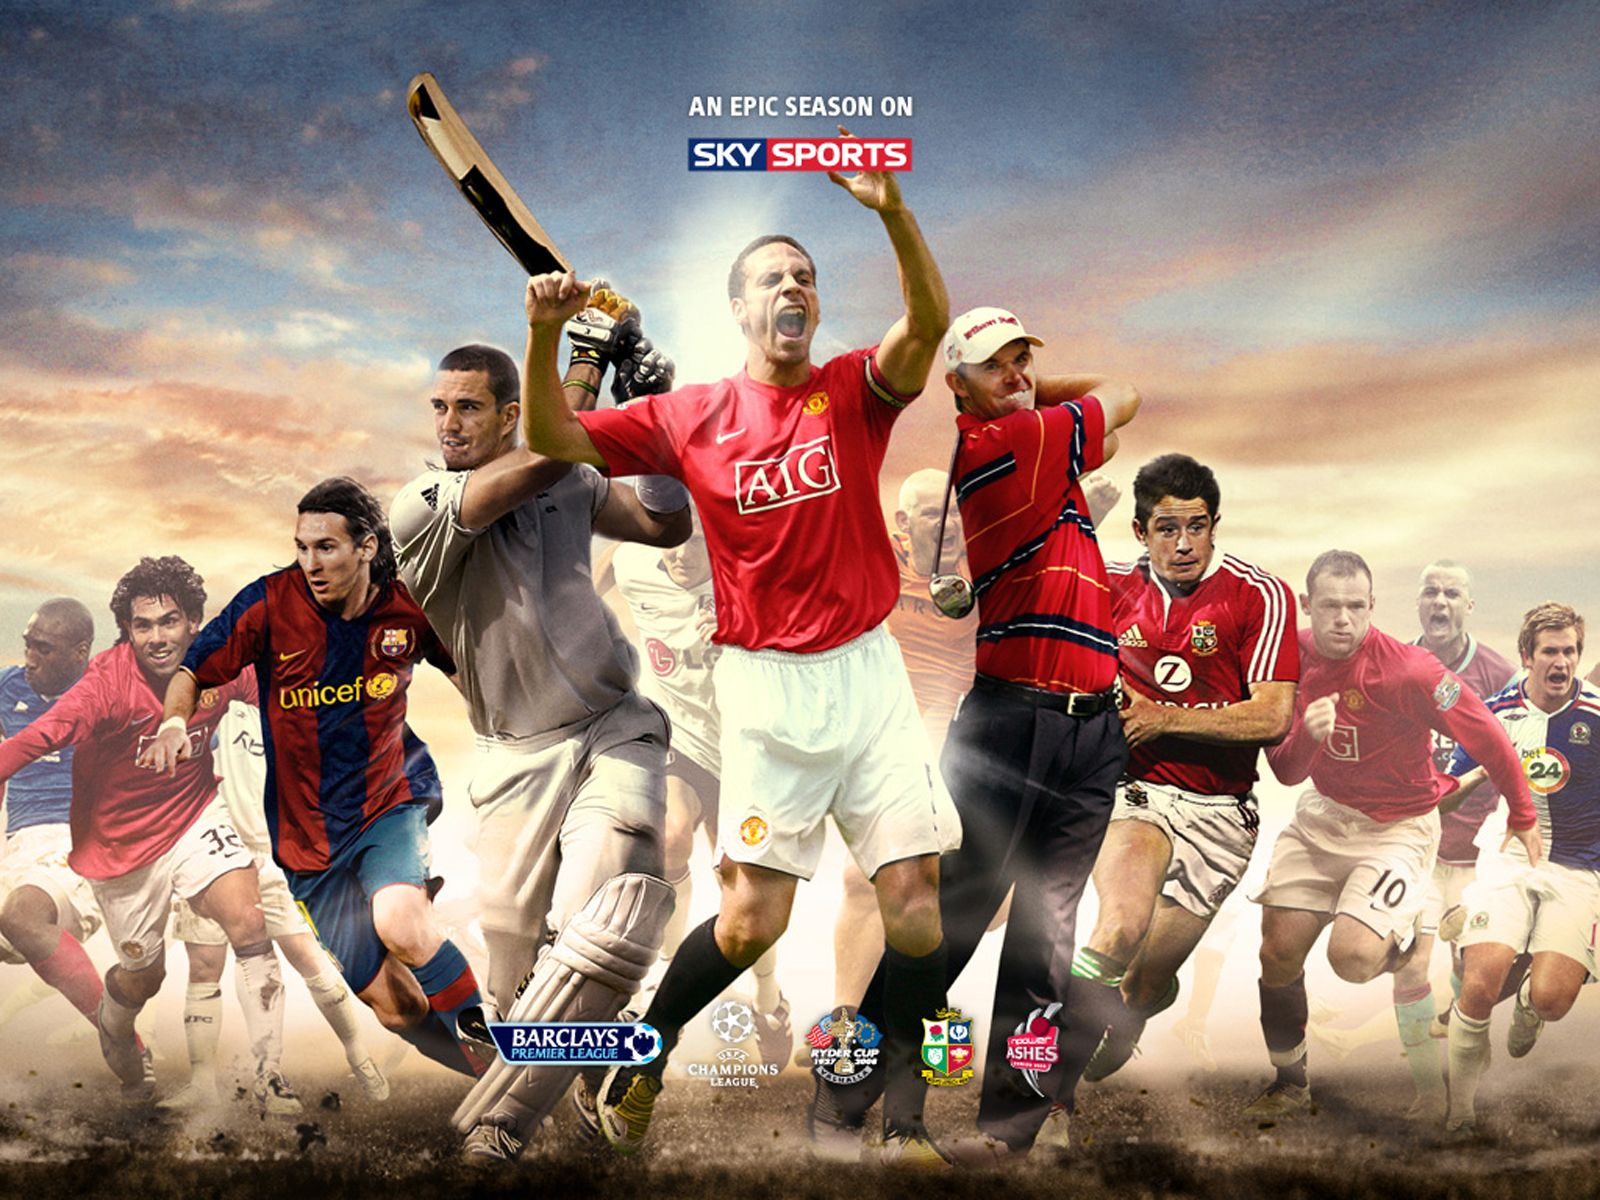 SKY SPORT 1 HD Watch Free Online with Live Stream High